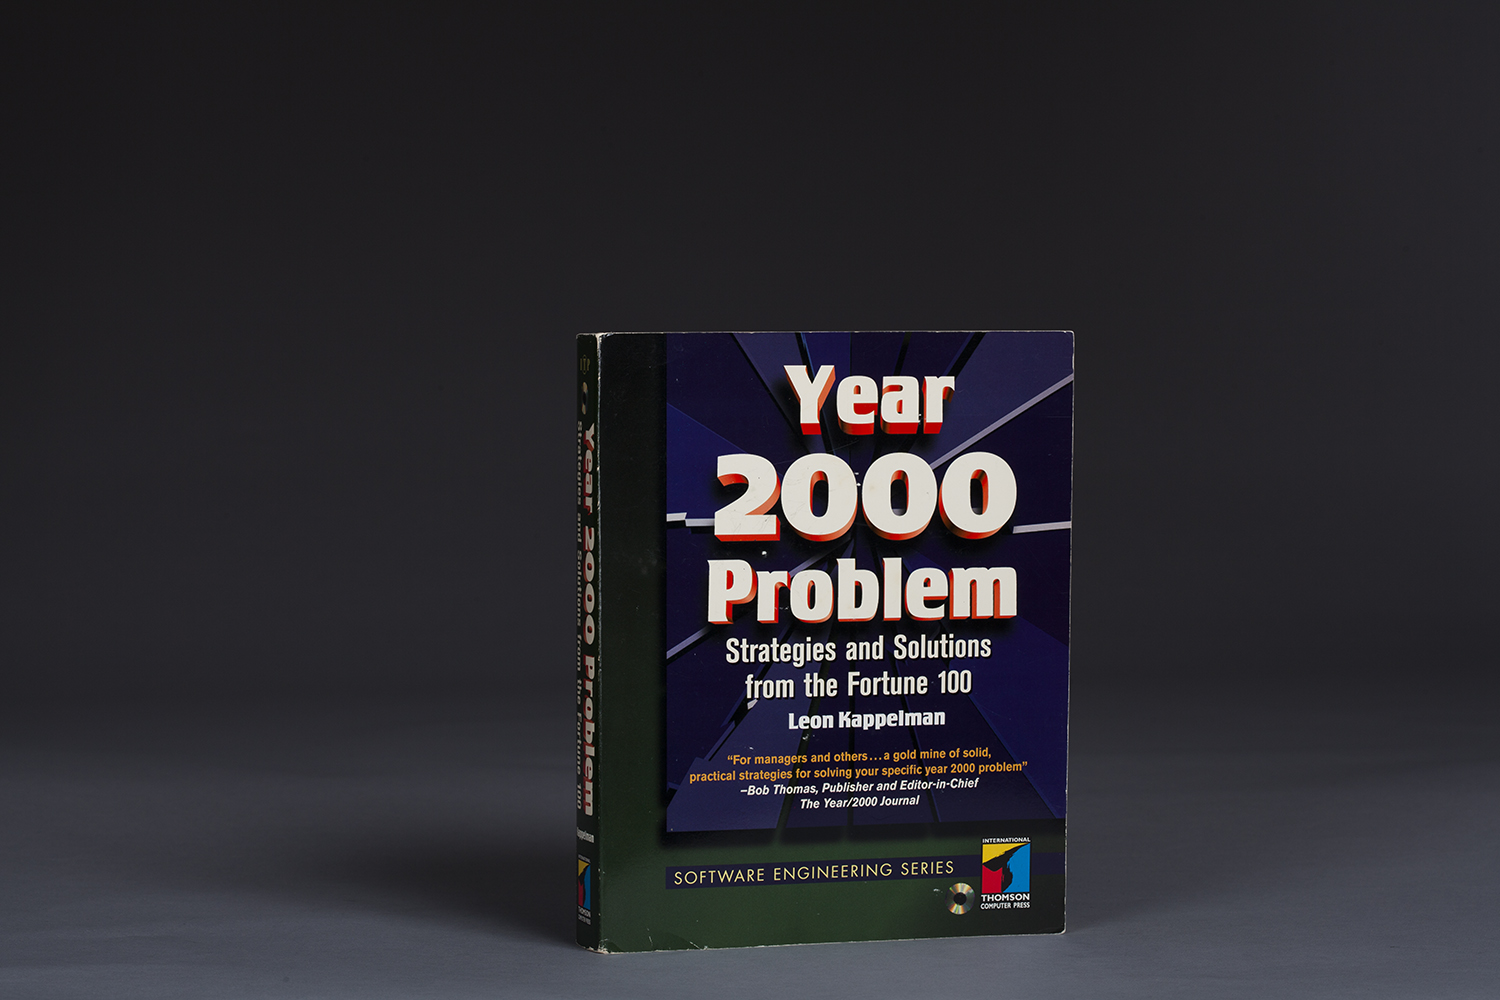 Year 2000 Problem Strategies and Solutions from the Fortune 100 - 0148 Cover.jpg